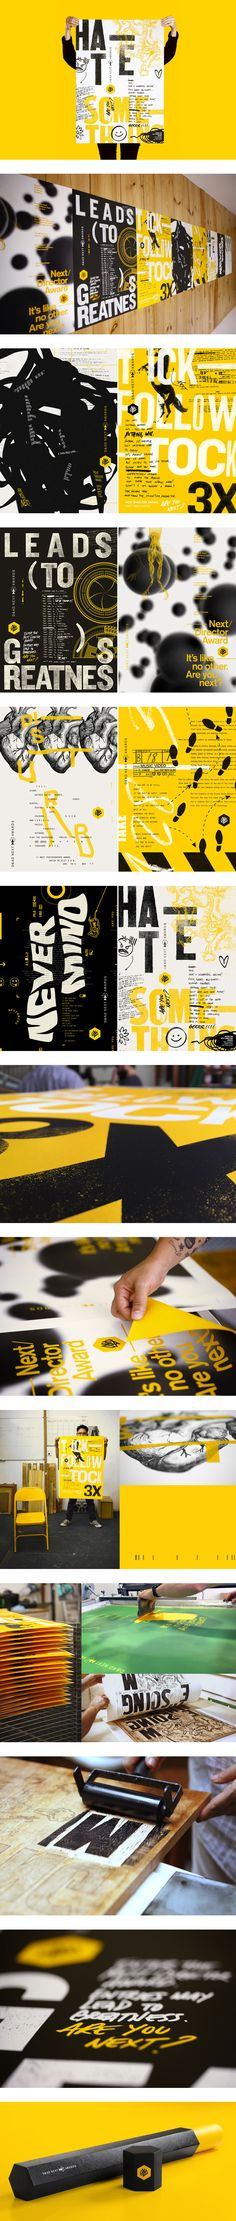 D&AD NEXT AWARDS - Rodrigo Castellari